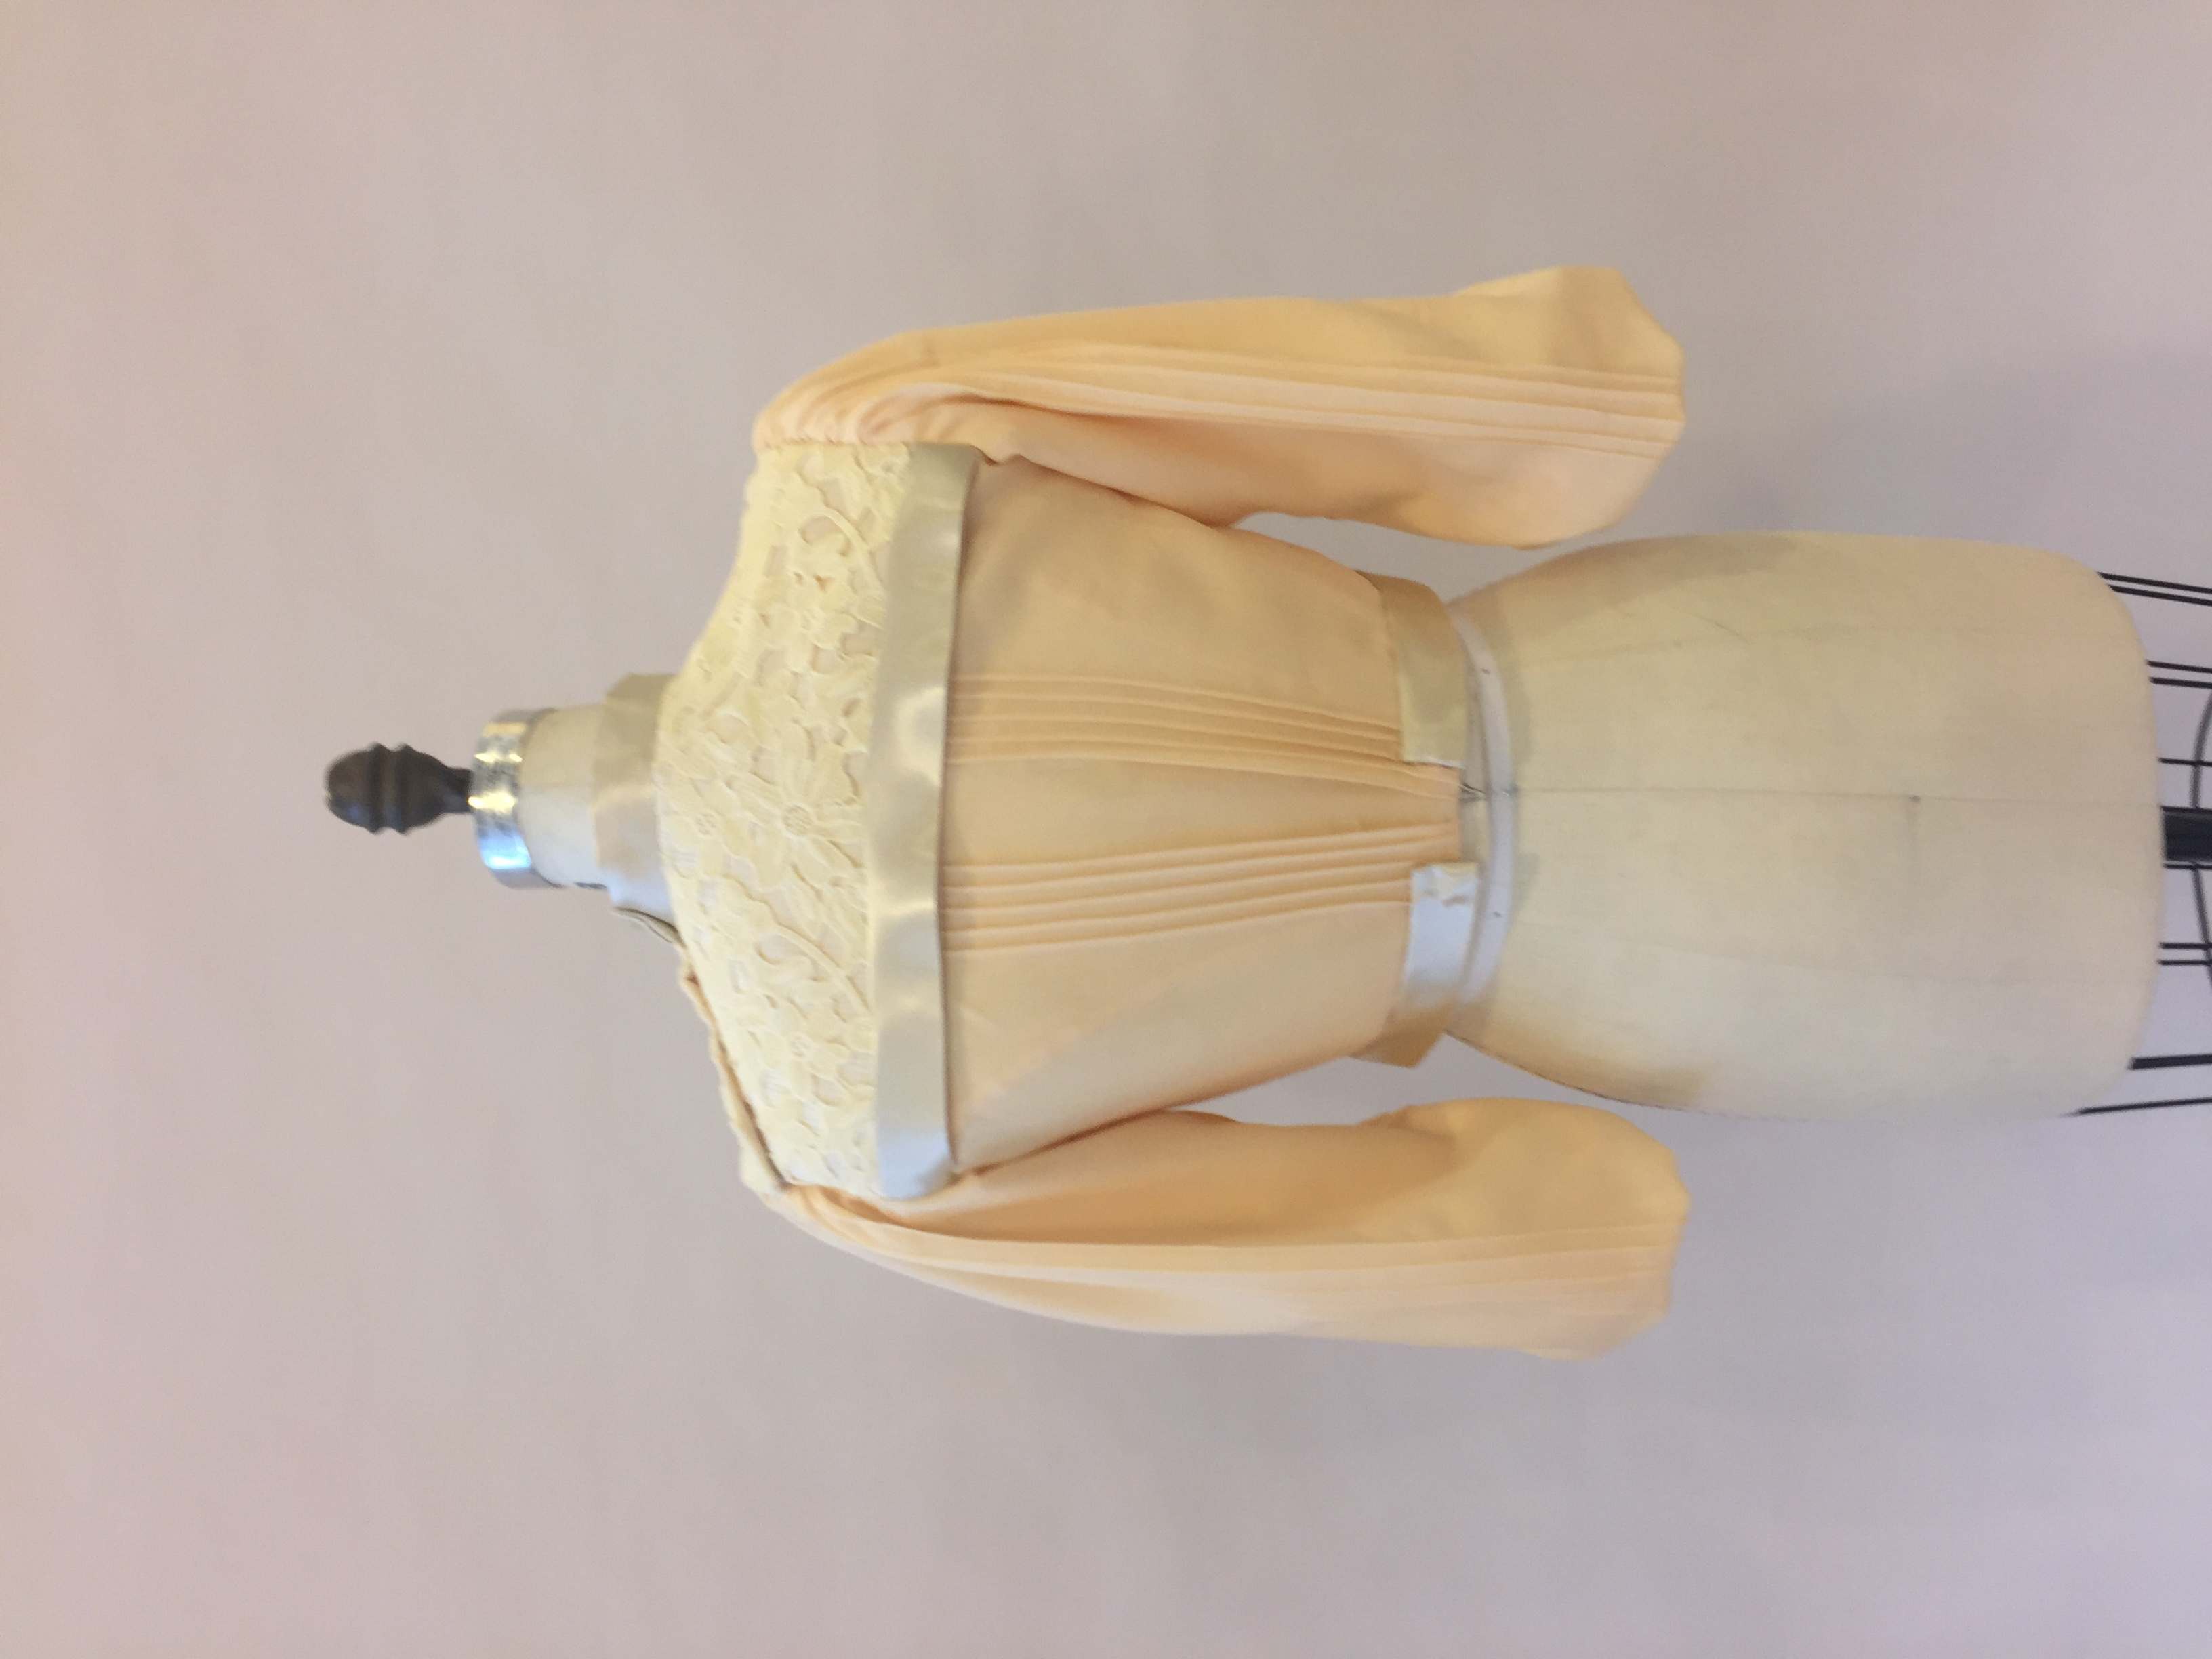 Reproduction on Dressform